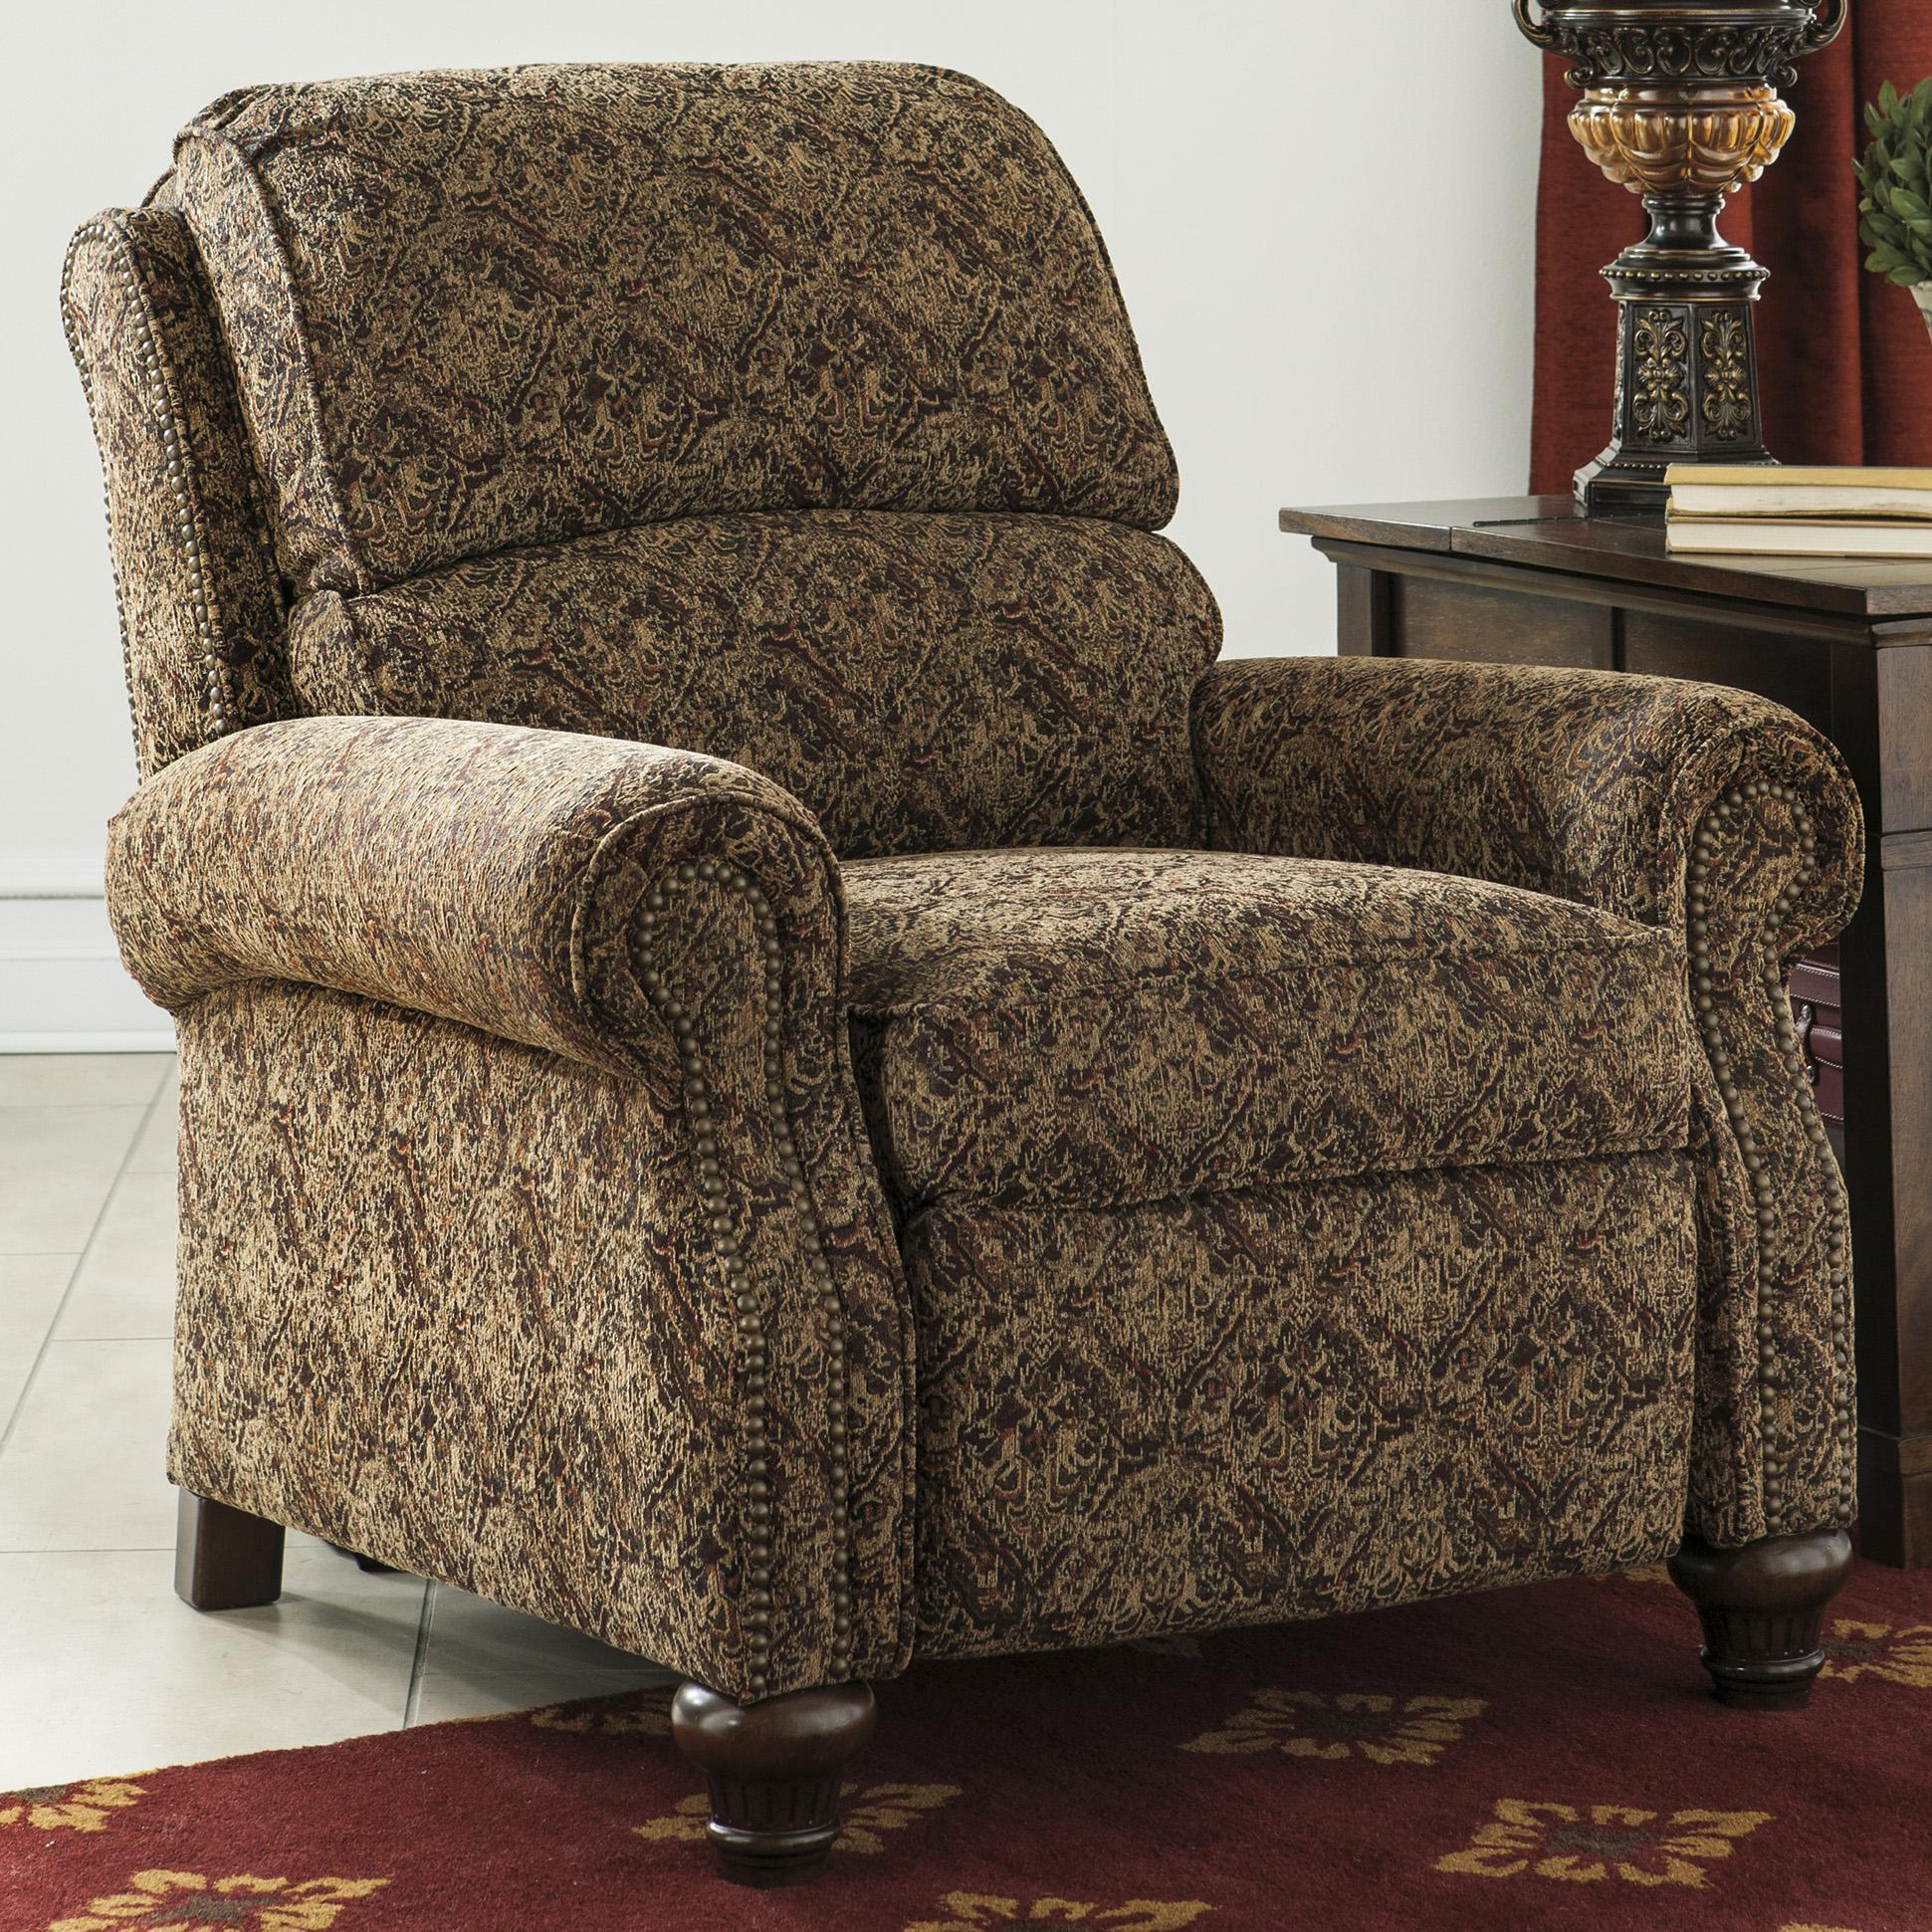 Transitional Style Push Back Low Leg Recliner by Signature Design